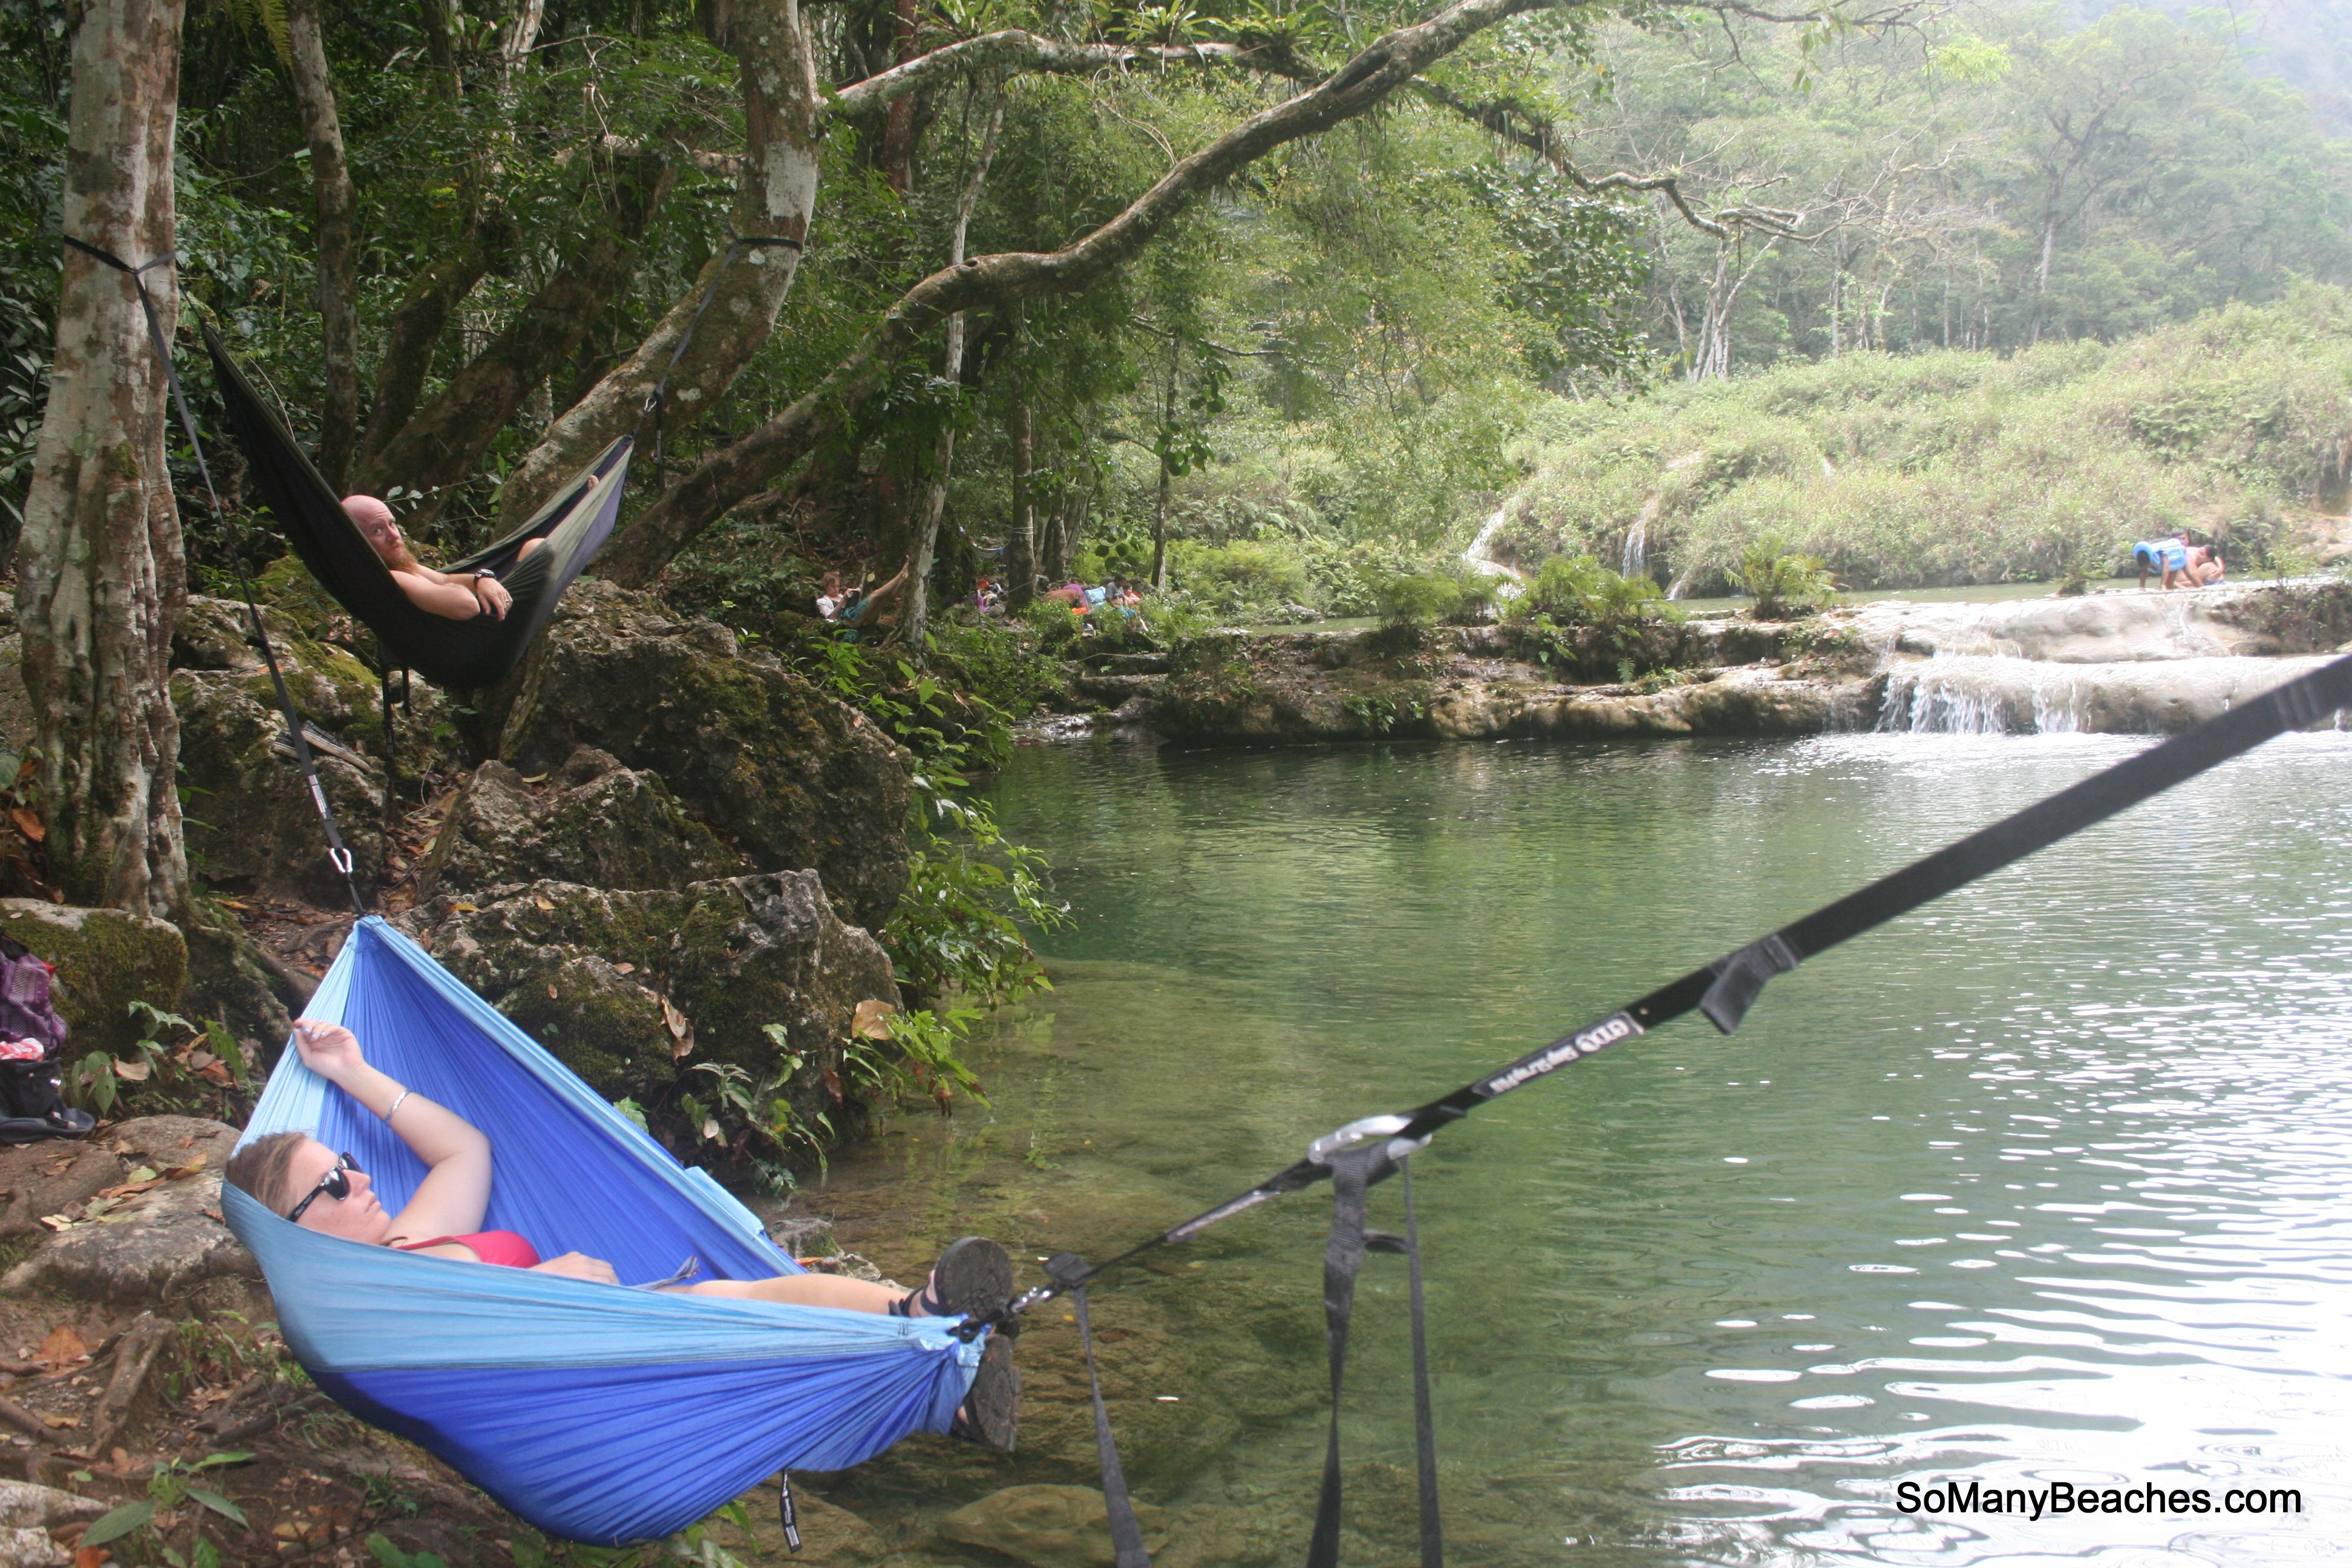 Blue Comfortable Eno Hammock Stand Designs For Outdoor